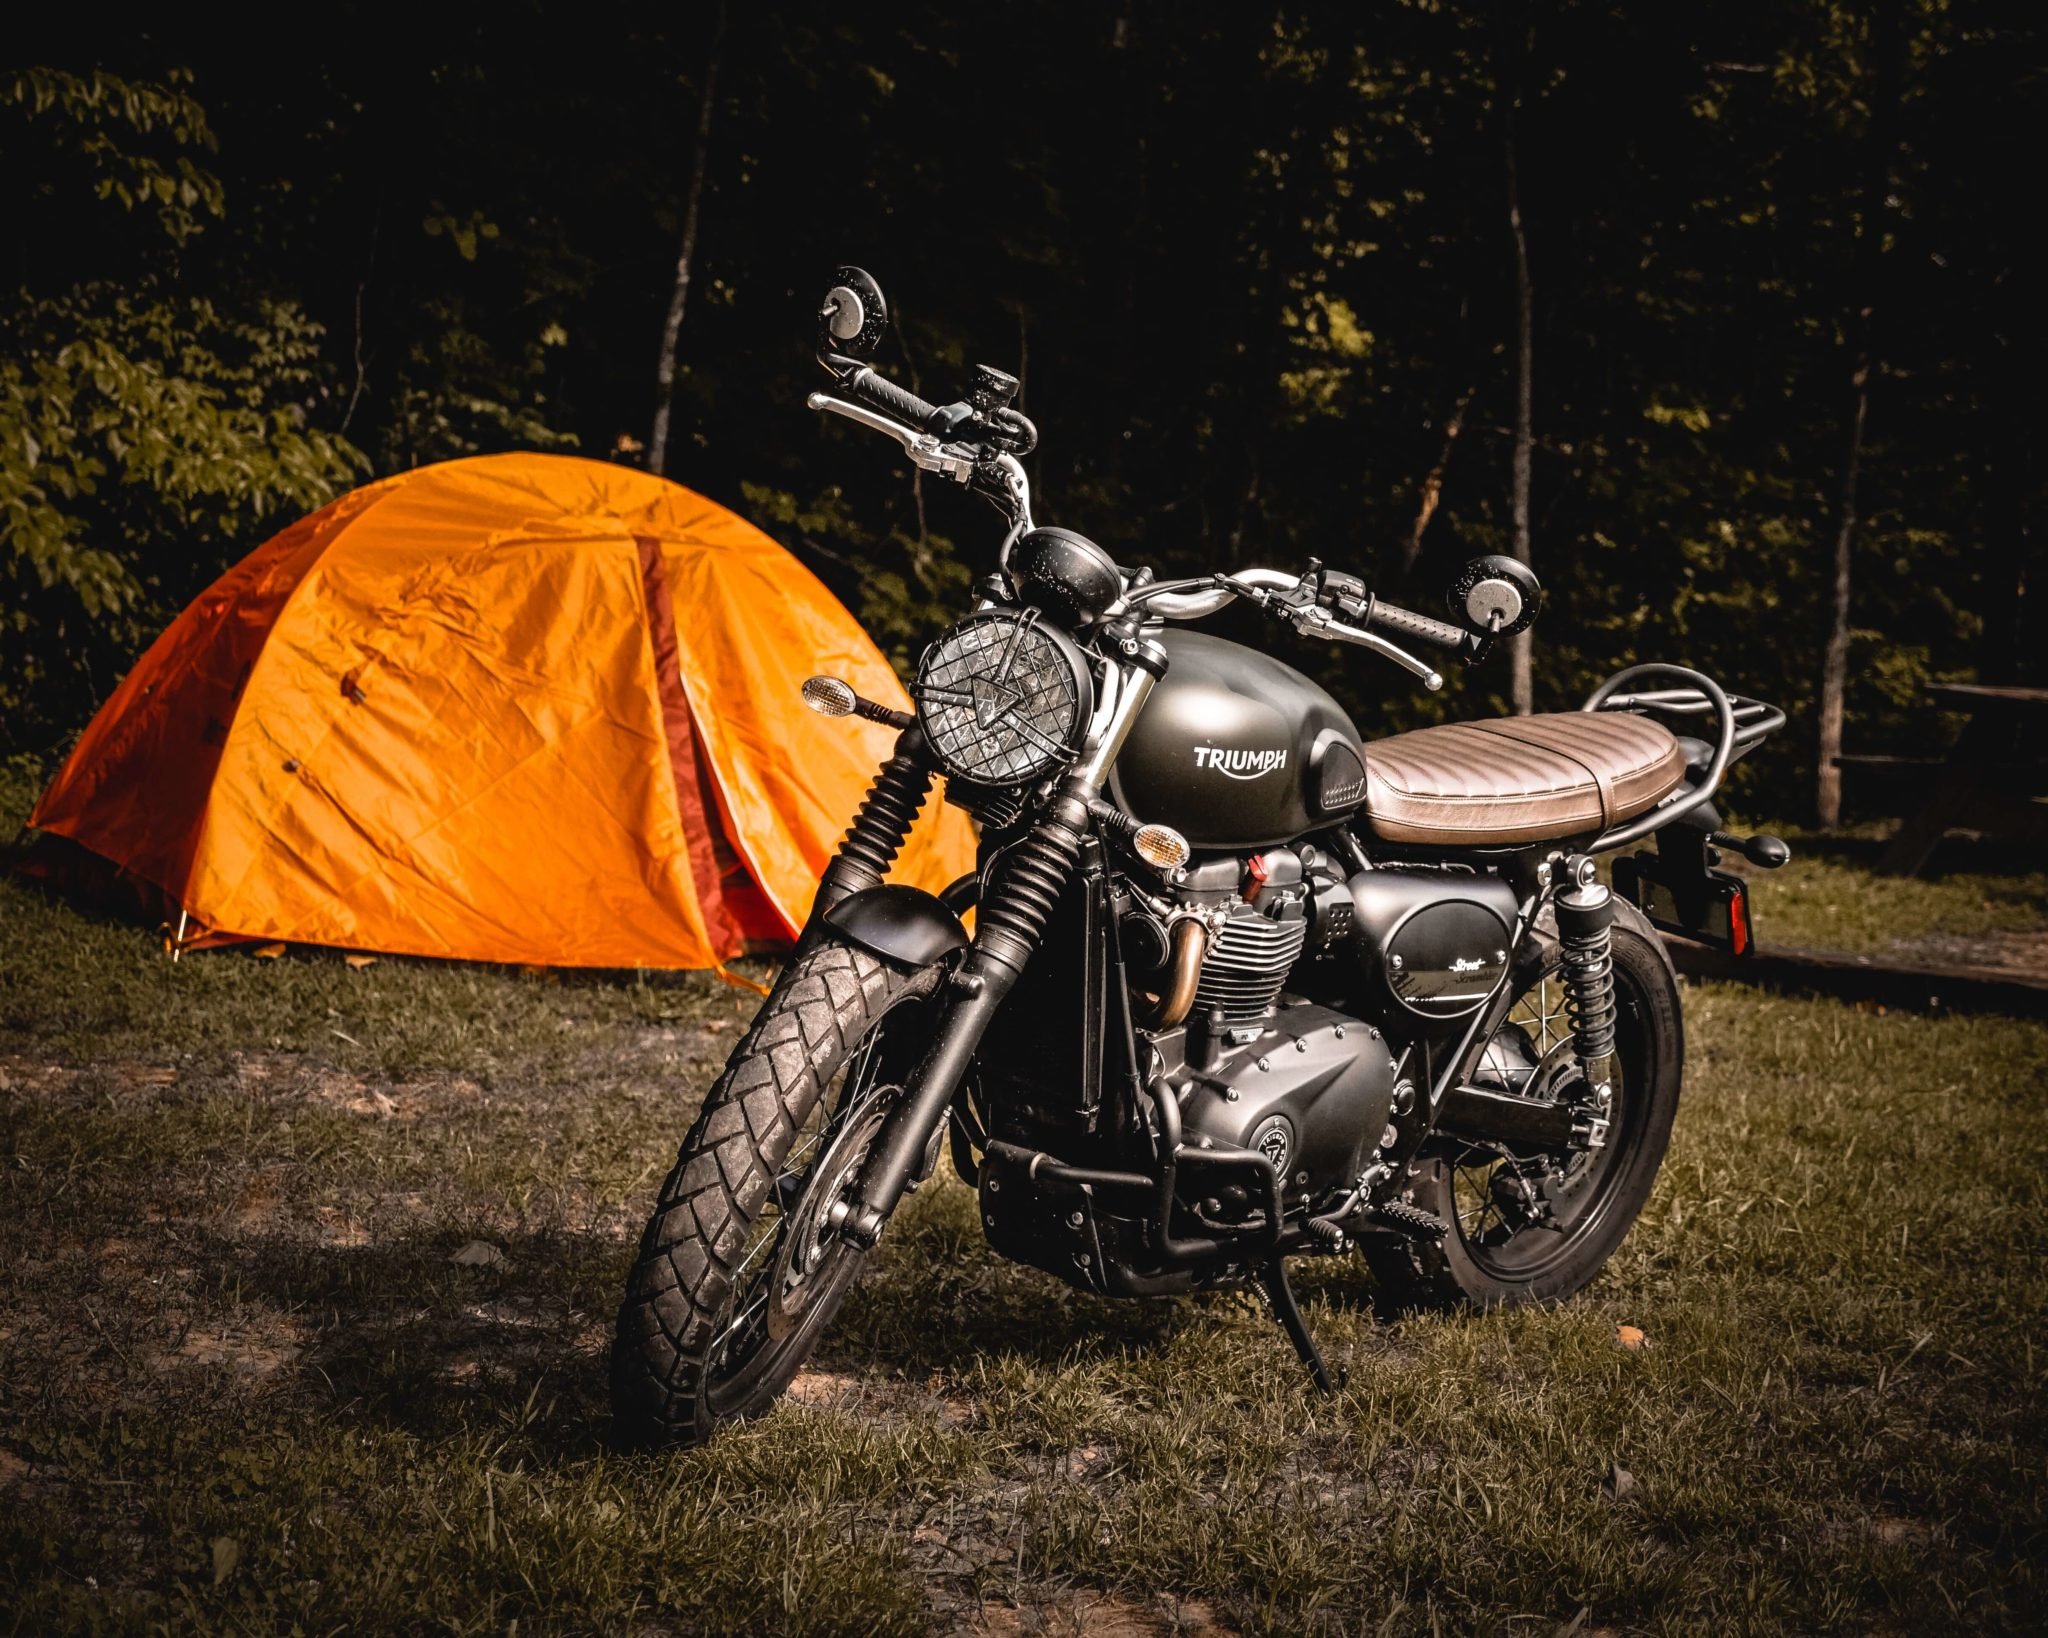 Motorcycle Camper Trailers For Camping Or Cargo Outdoorsy Com